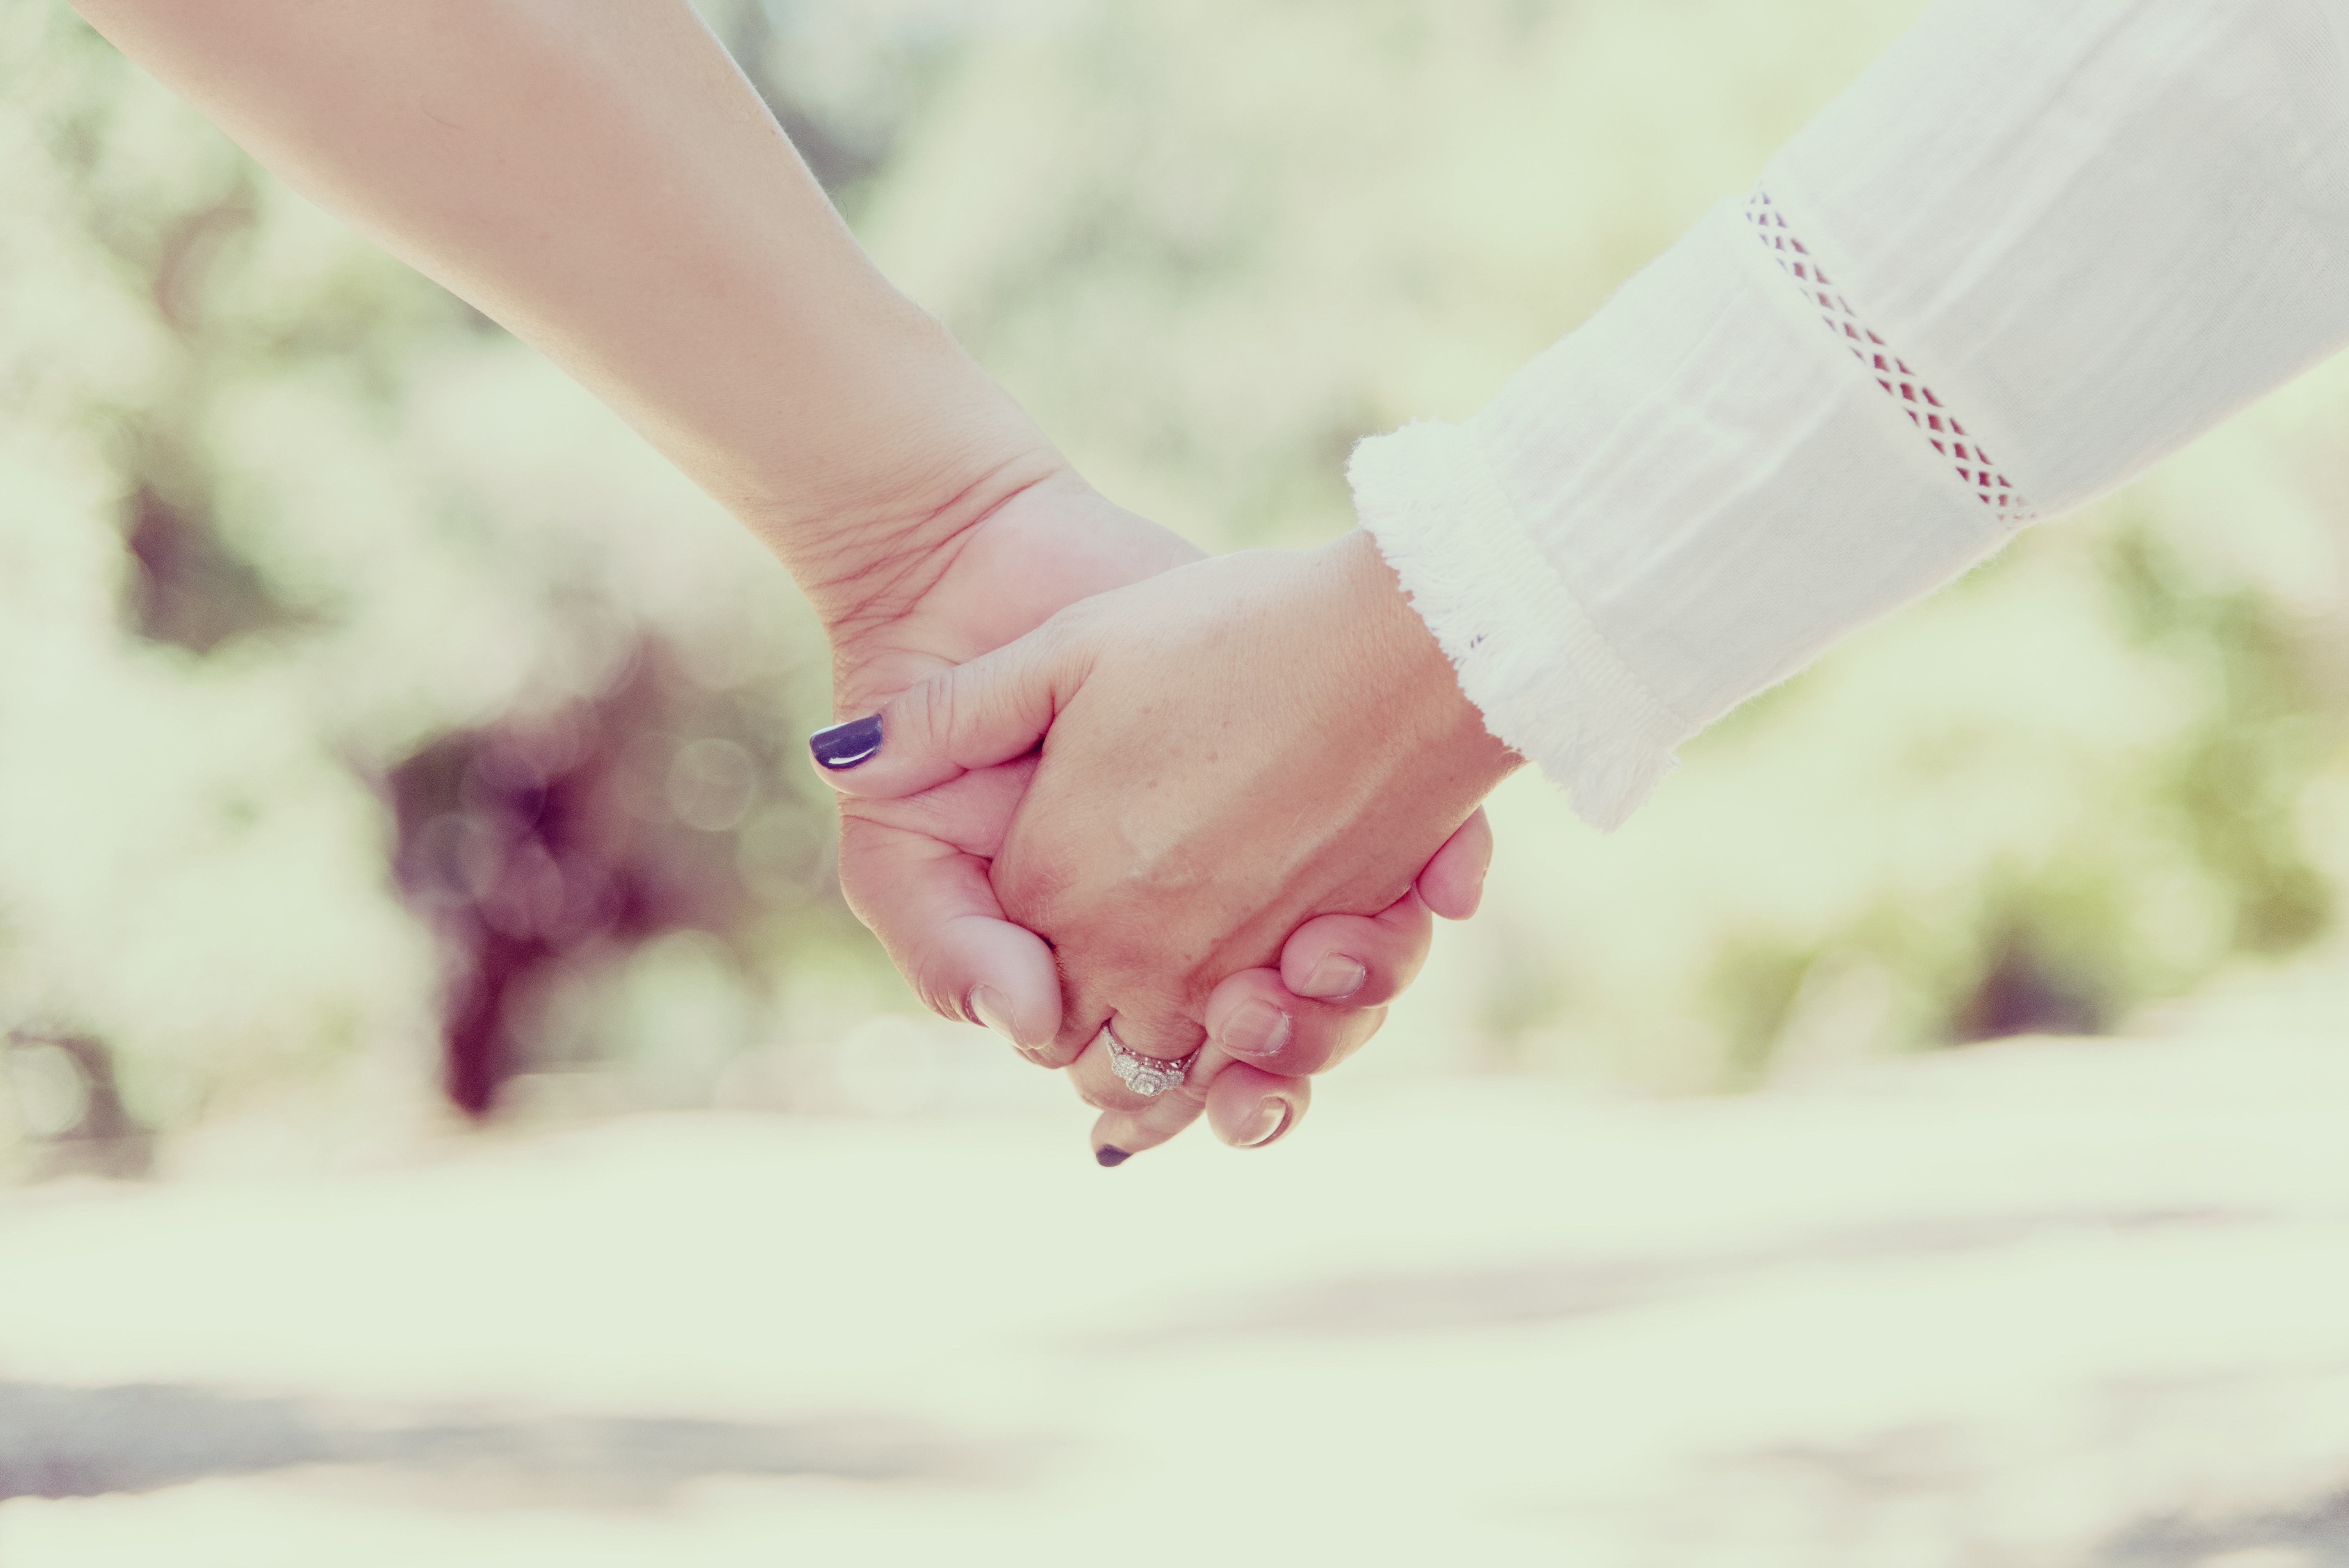 Woman Holding Hands, People, Woman, Wedding, Togetherness, HQ Photo